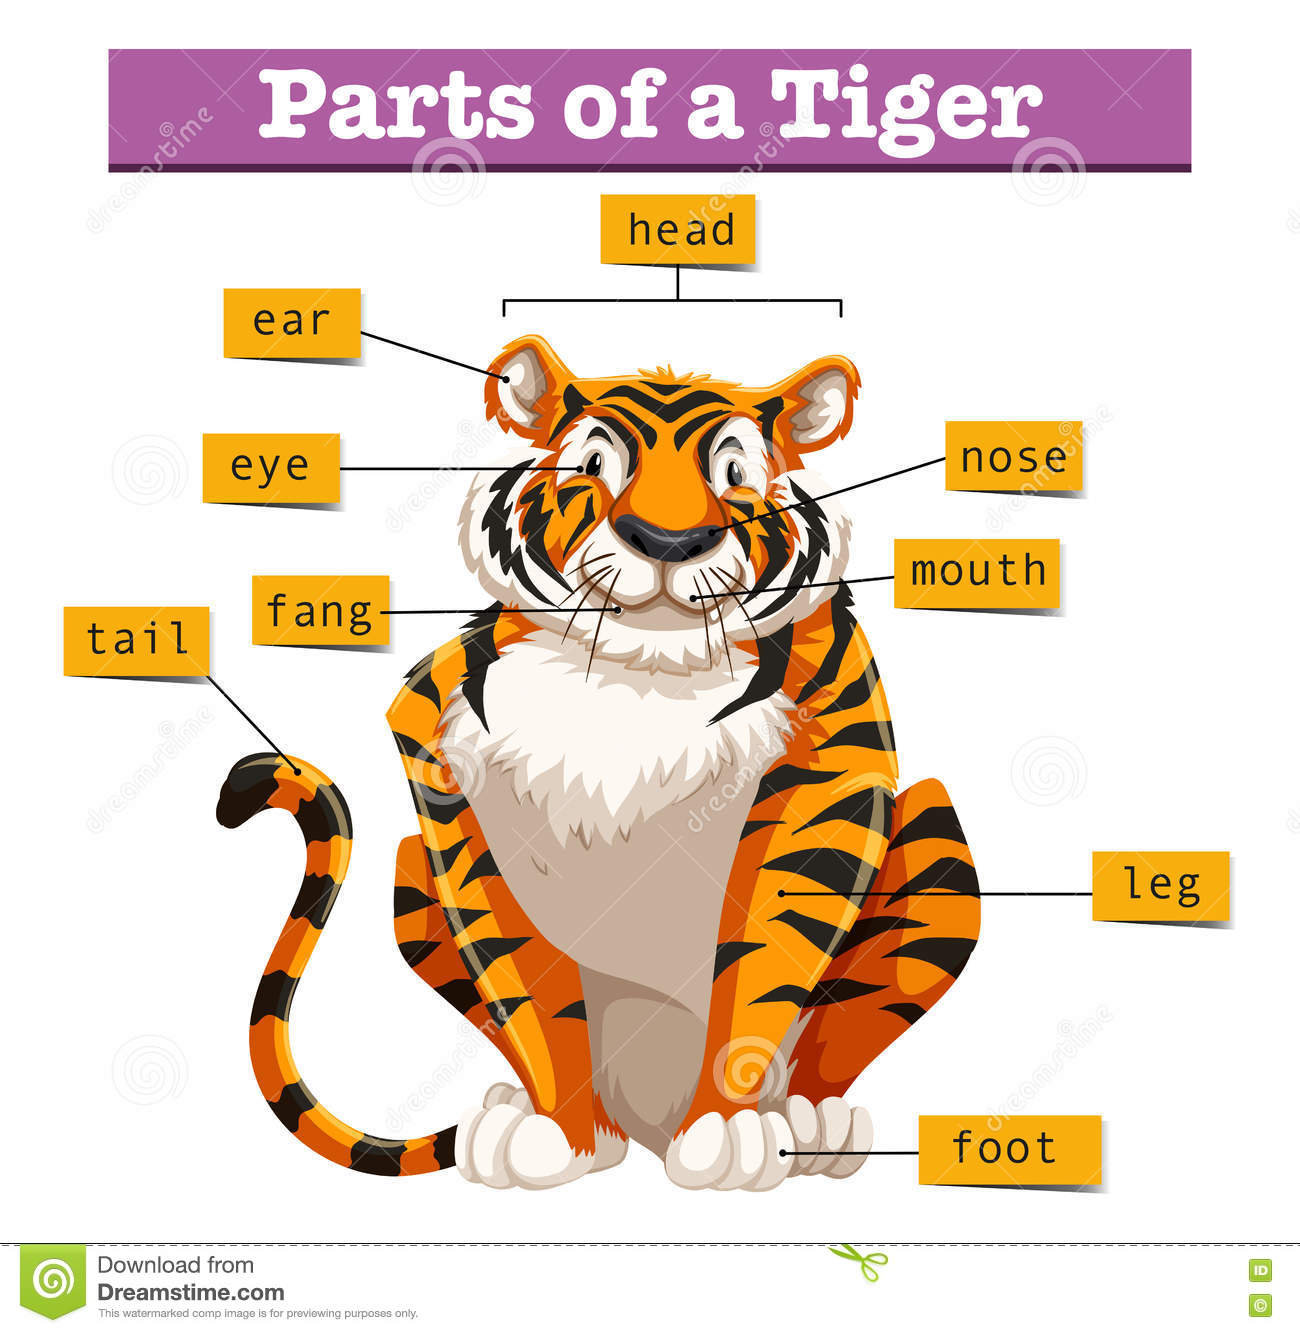 Diagrama que mostra partes do tigre